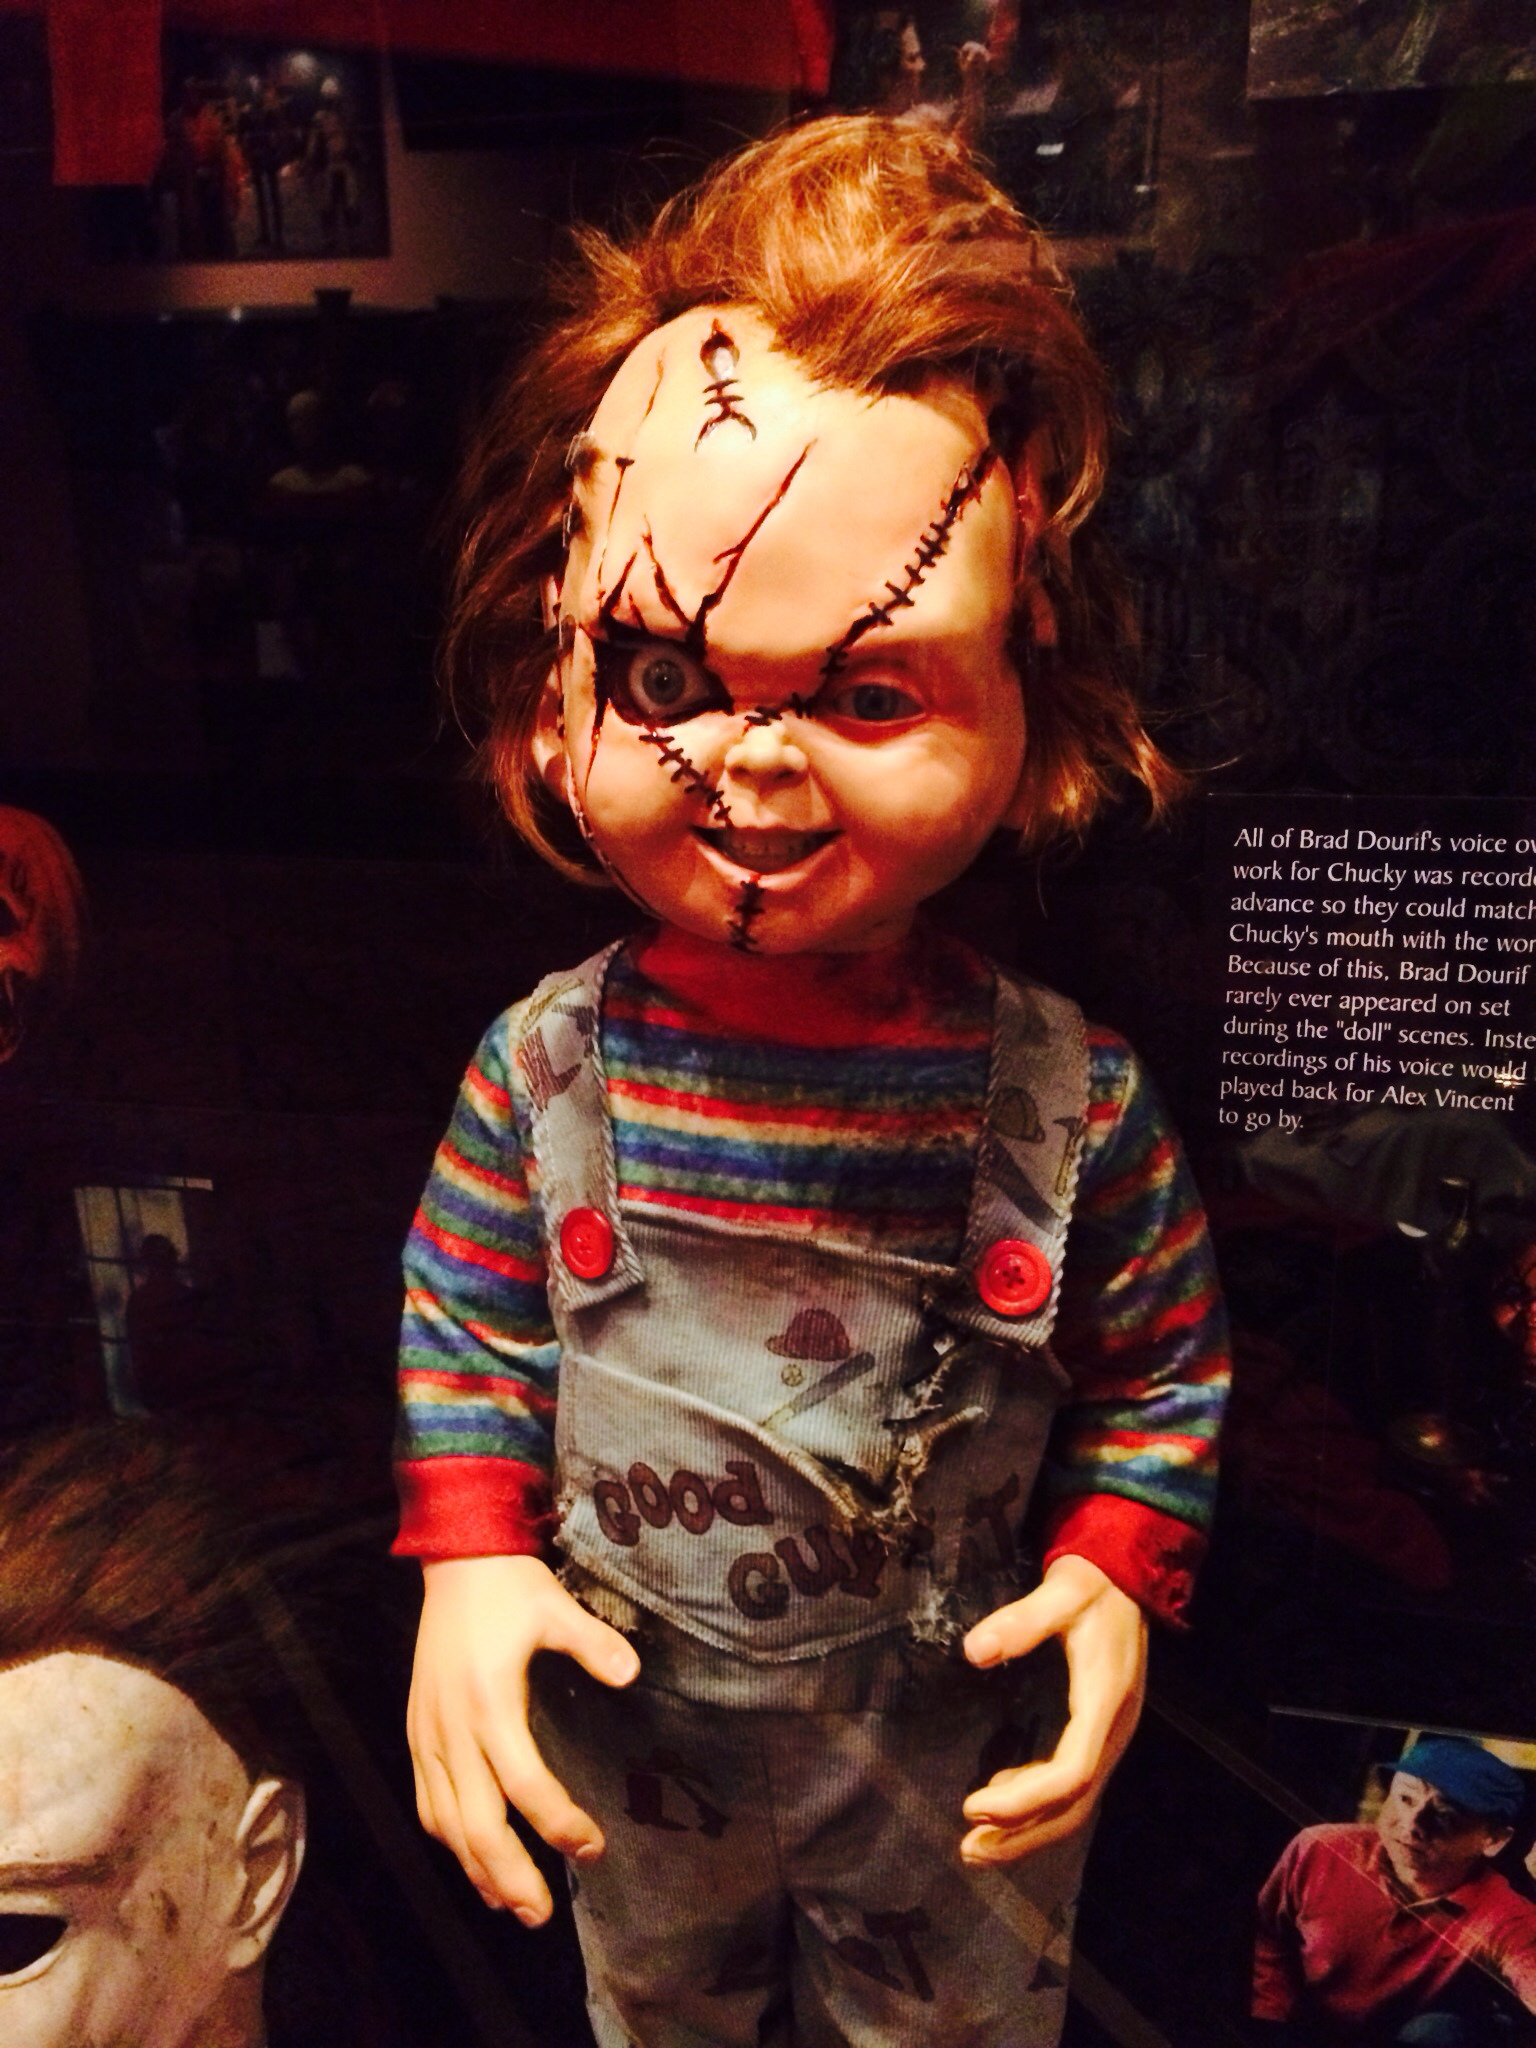 picture of chucky doll